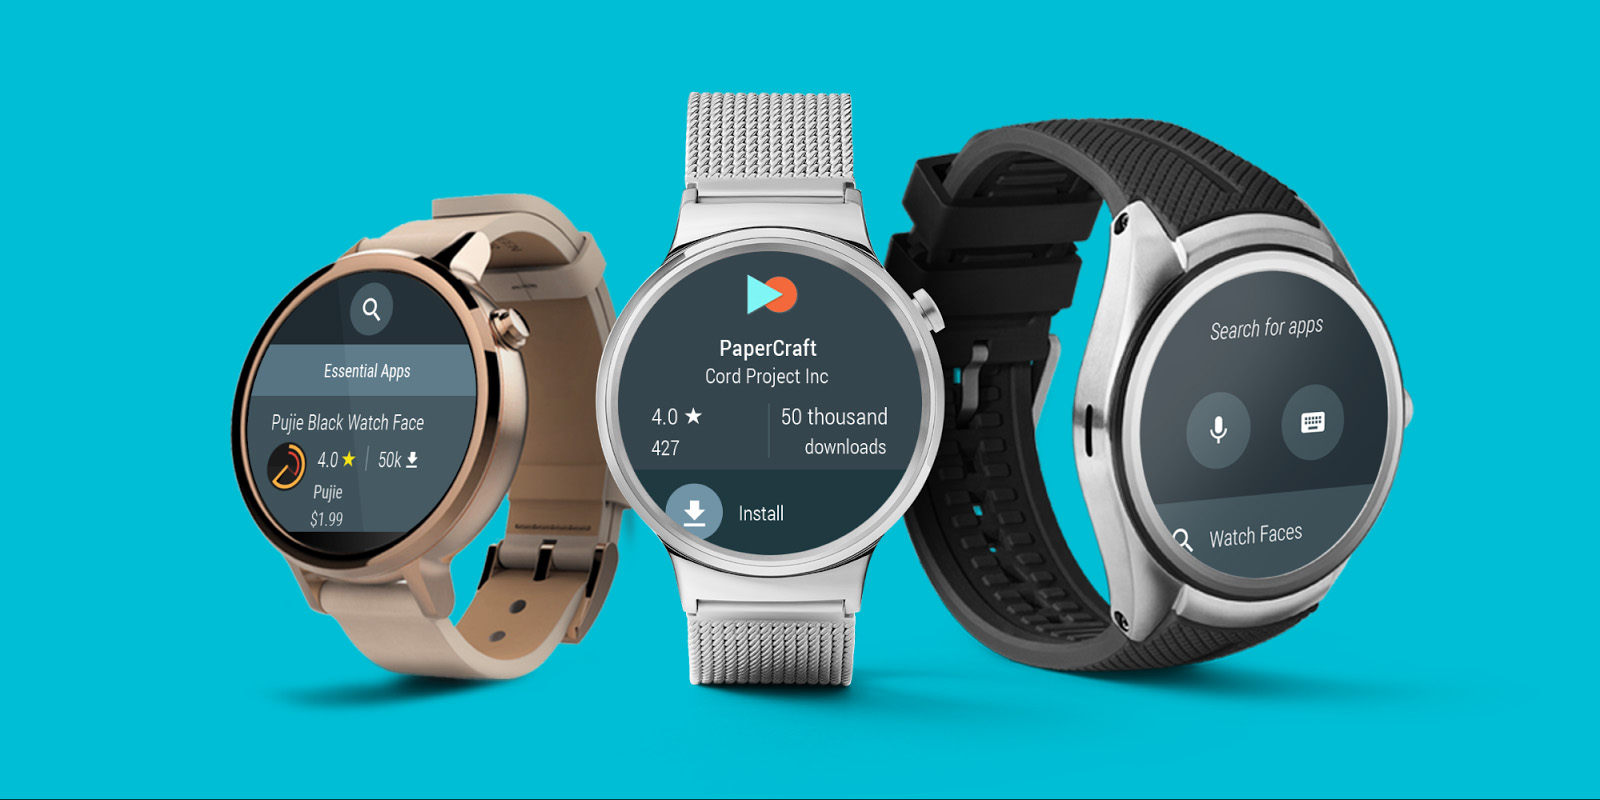 Google is jamming an app store into Android Wear watches